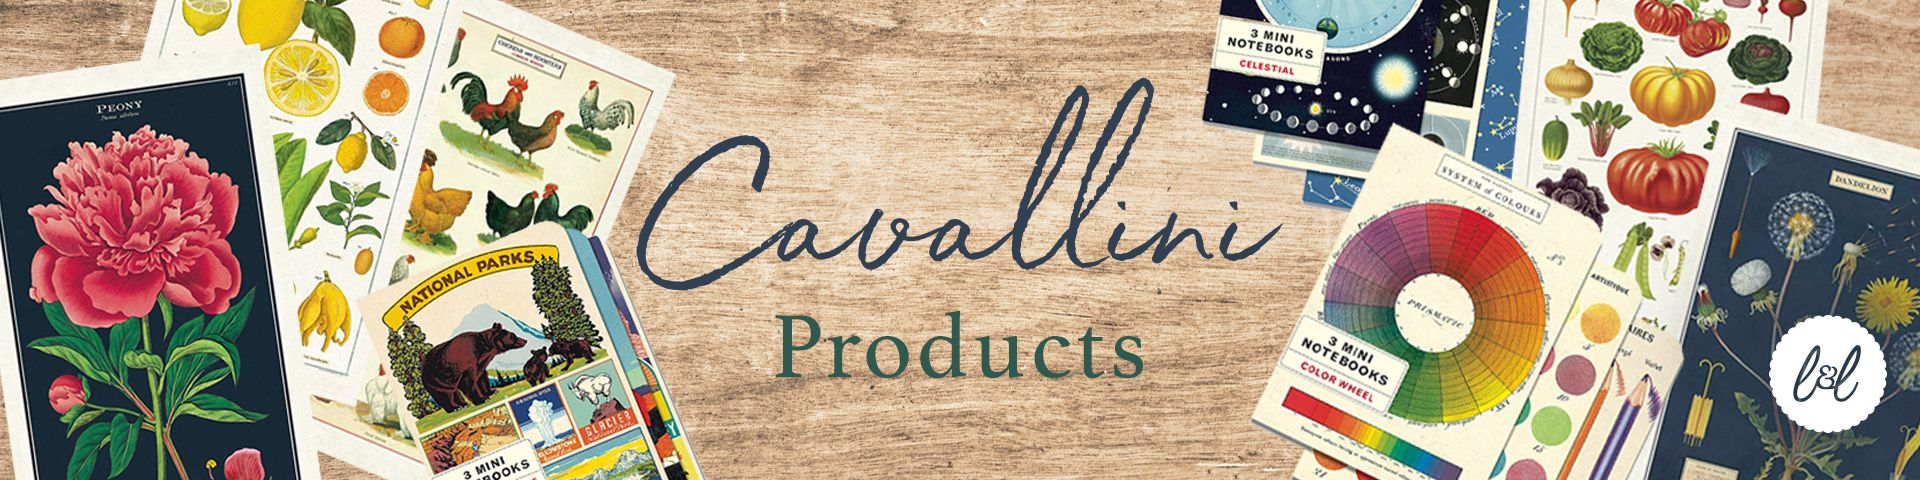 Cavallini Notebooks and Posters